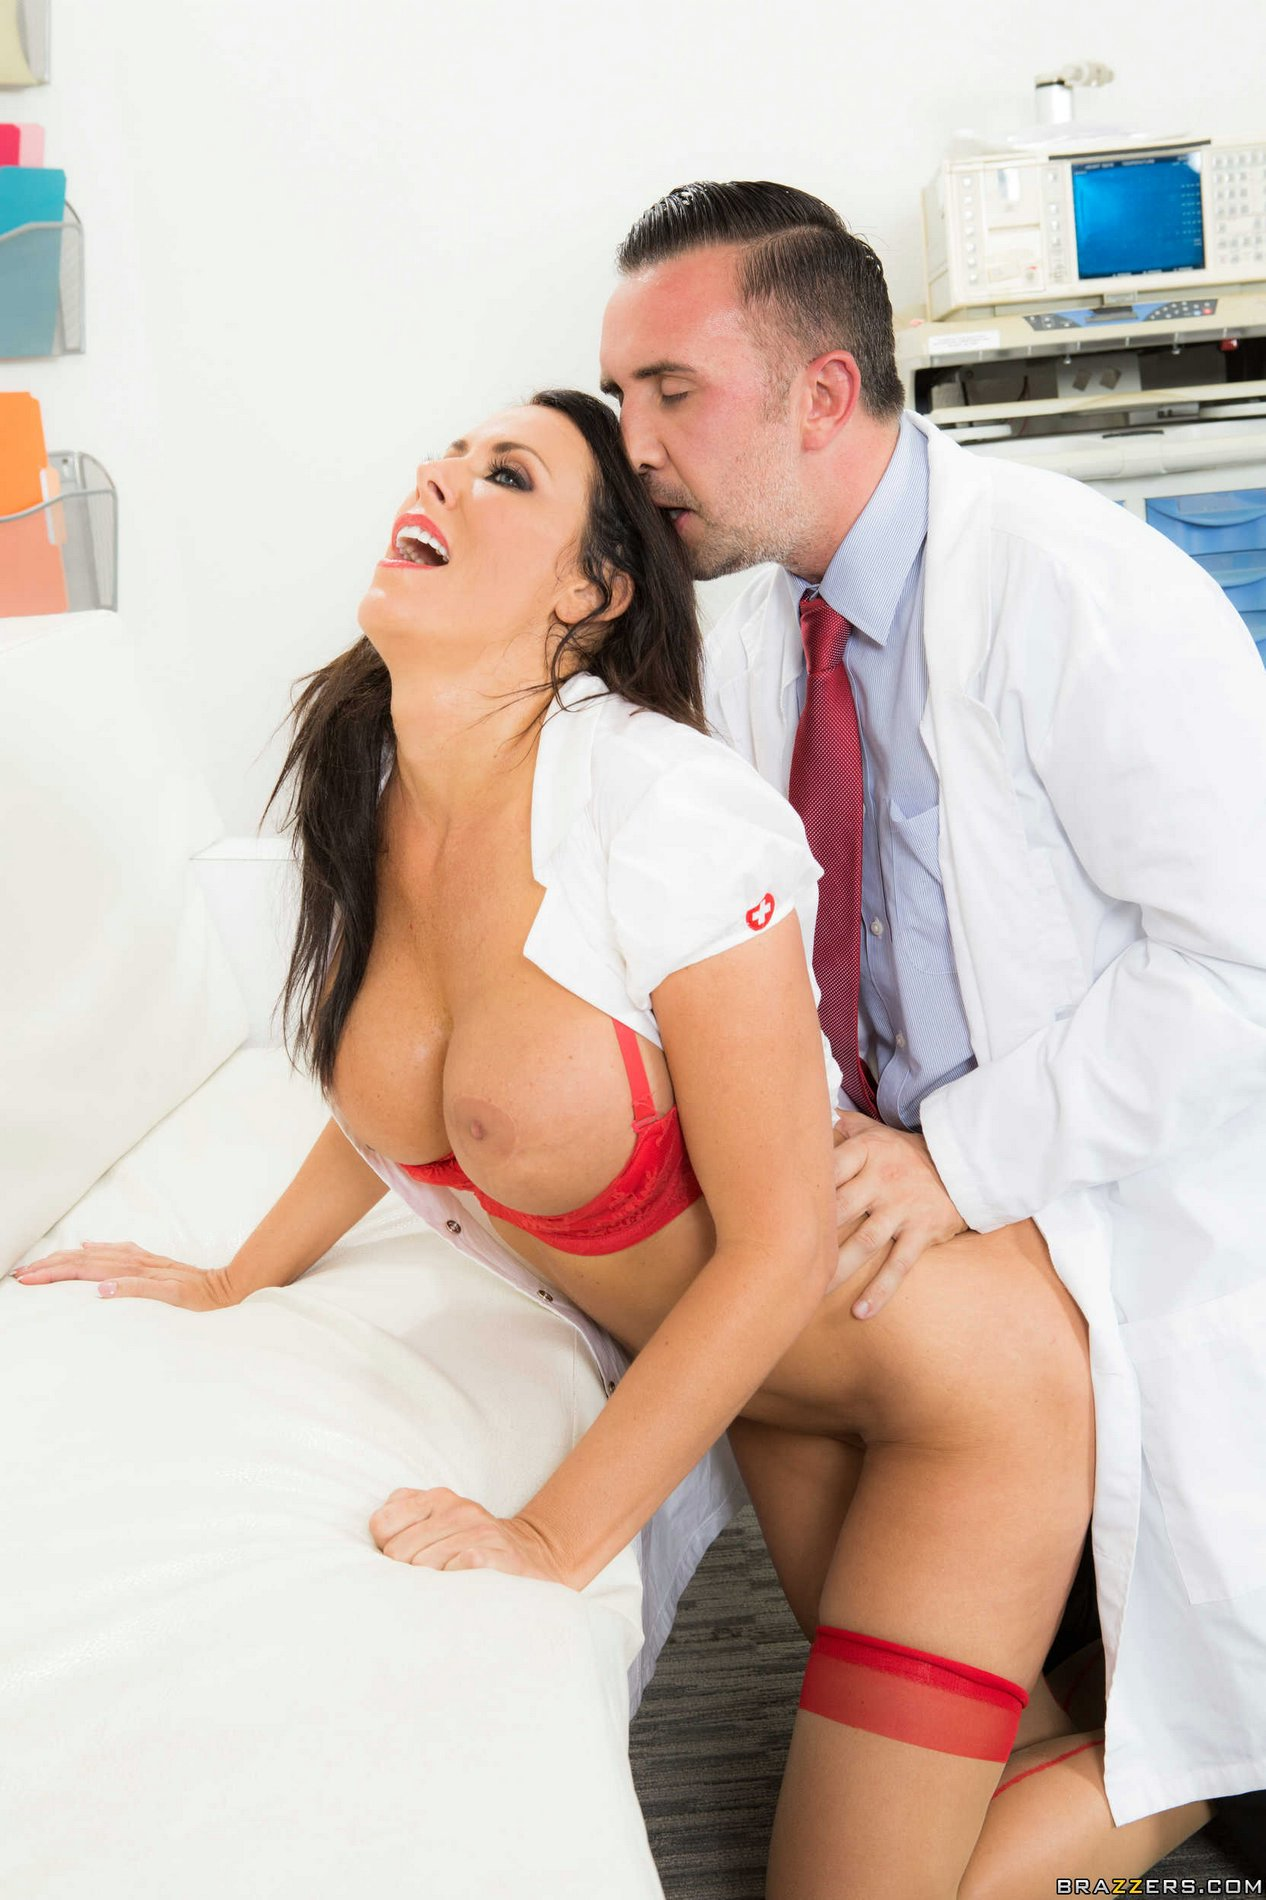 Reagan foxx doctor